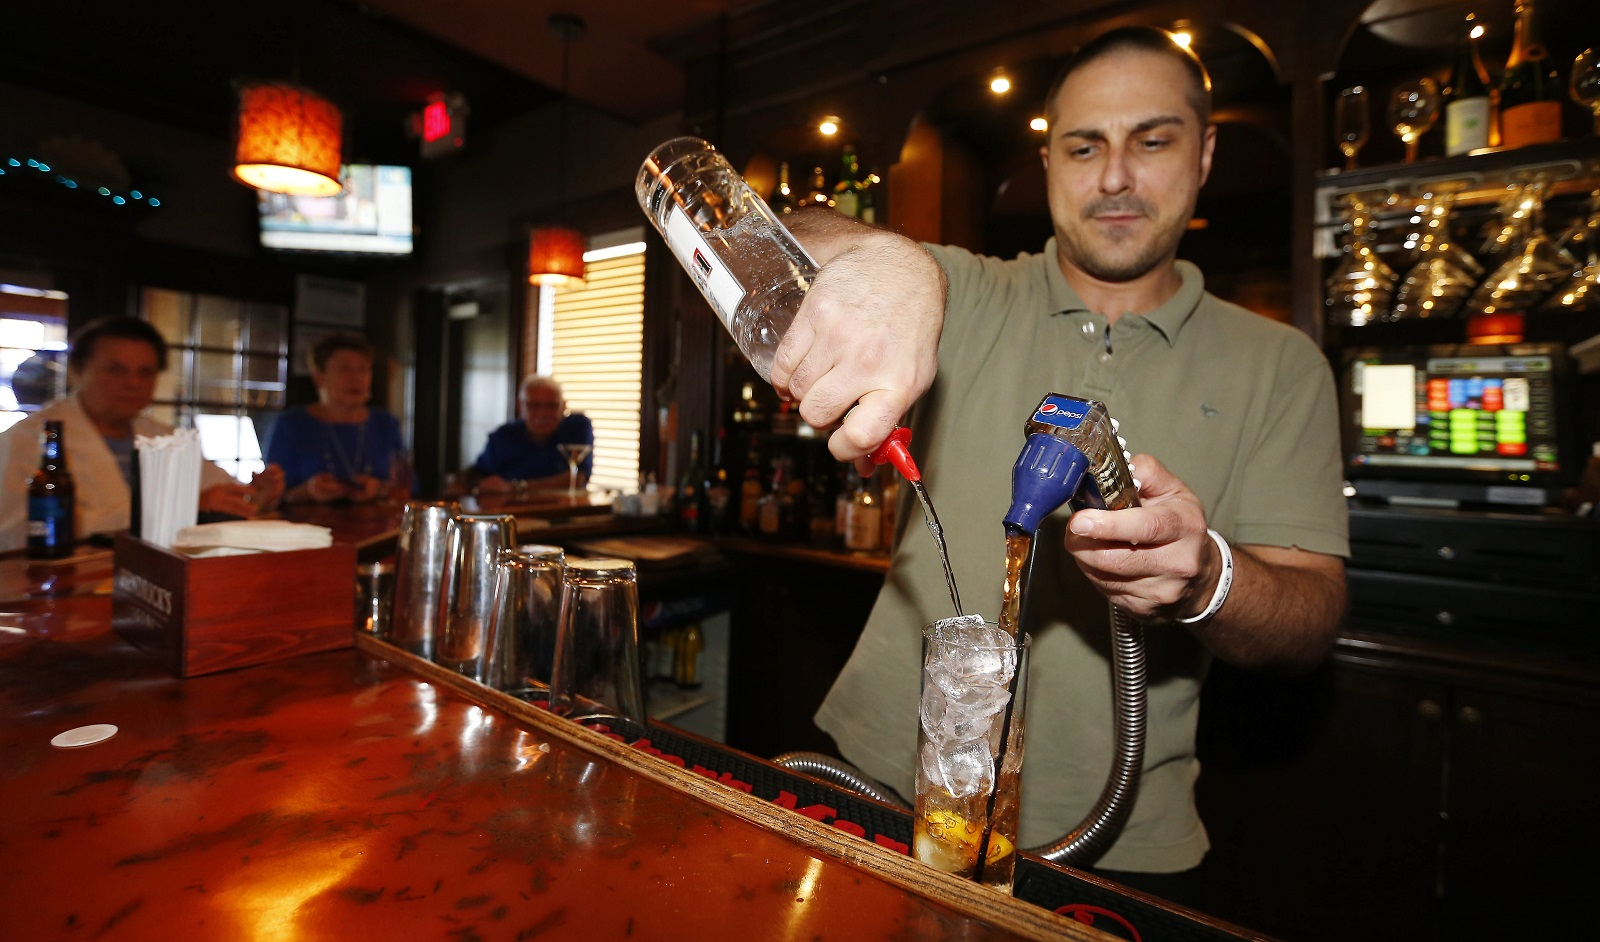 Bartender Frank Damon pours a drink at the WaterStone Grill in Hamburg. (Mark Mulville/Buffalo News)